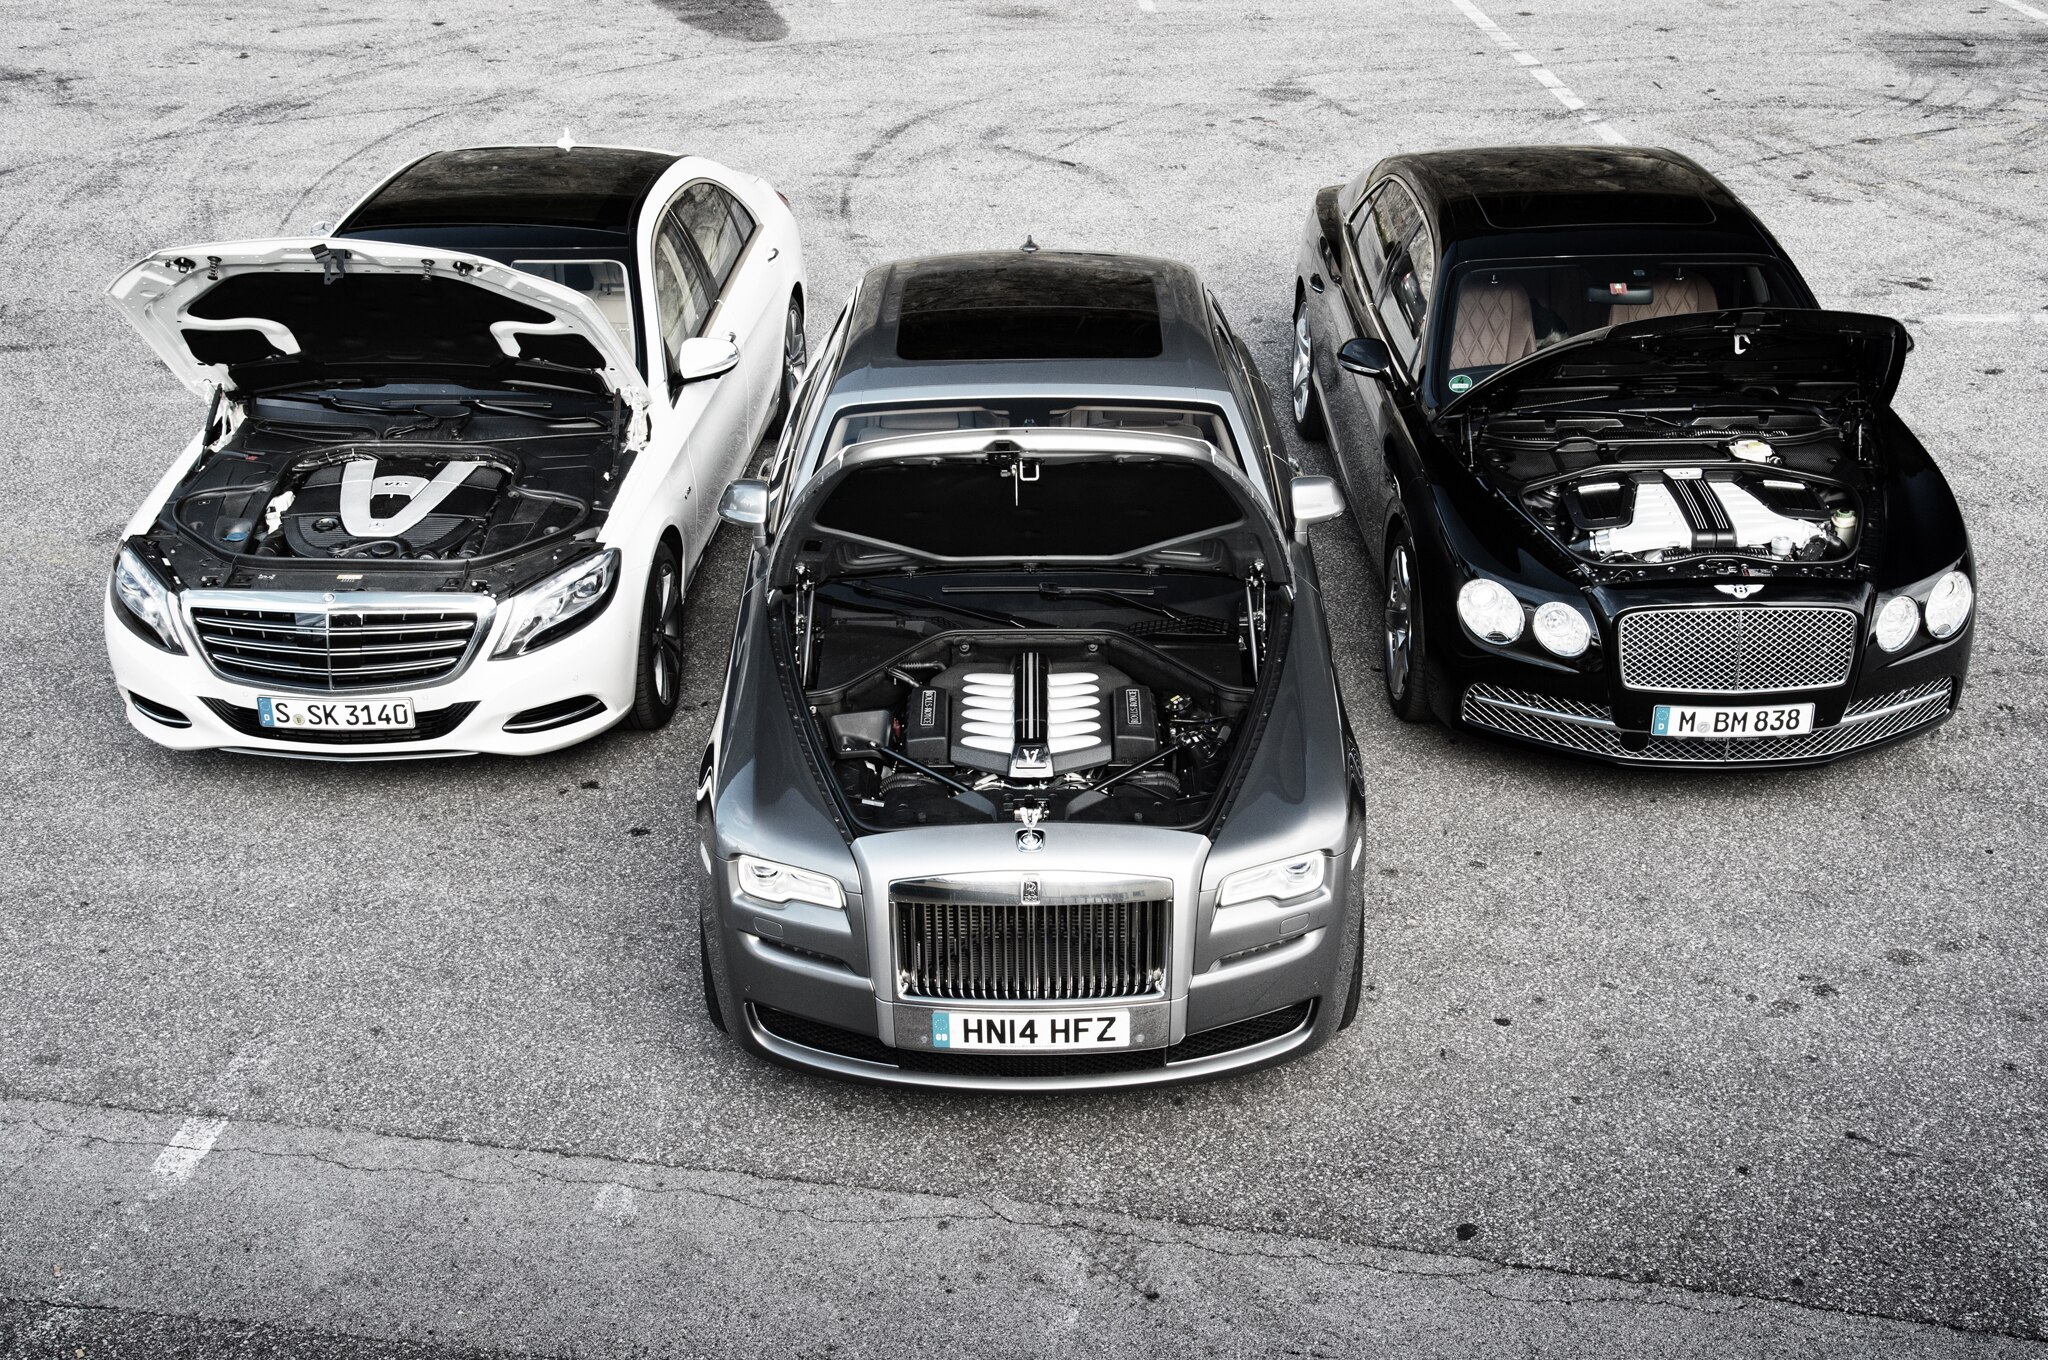 Bentley flying spur vs mercedes benz s600 vs rolls royce for Mercedes benz royale 600 price